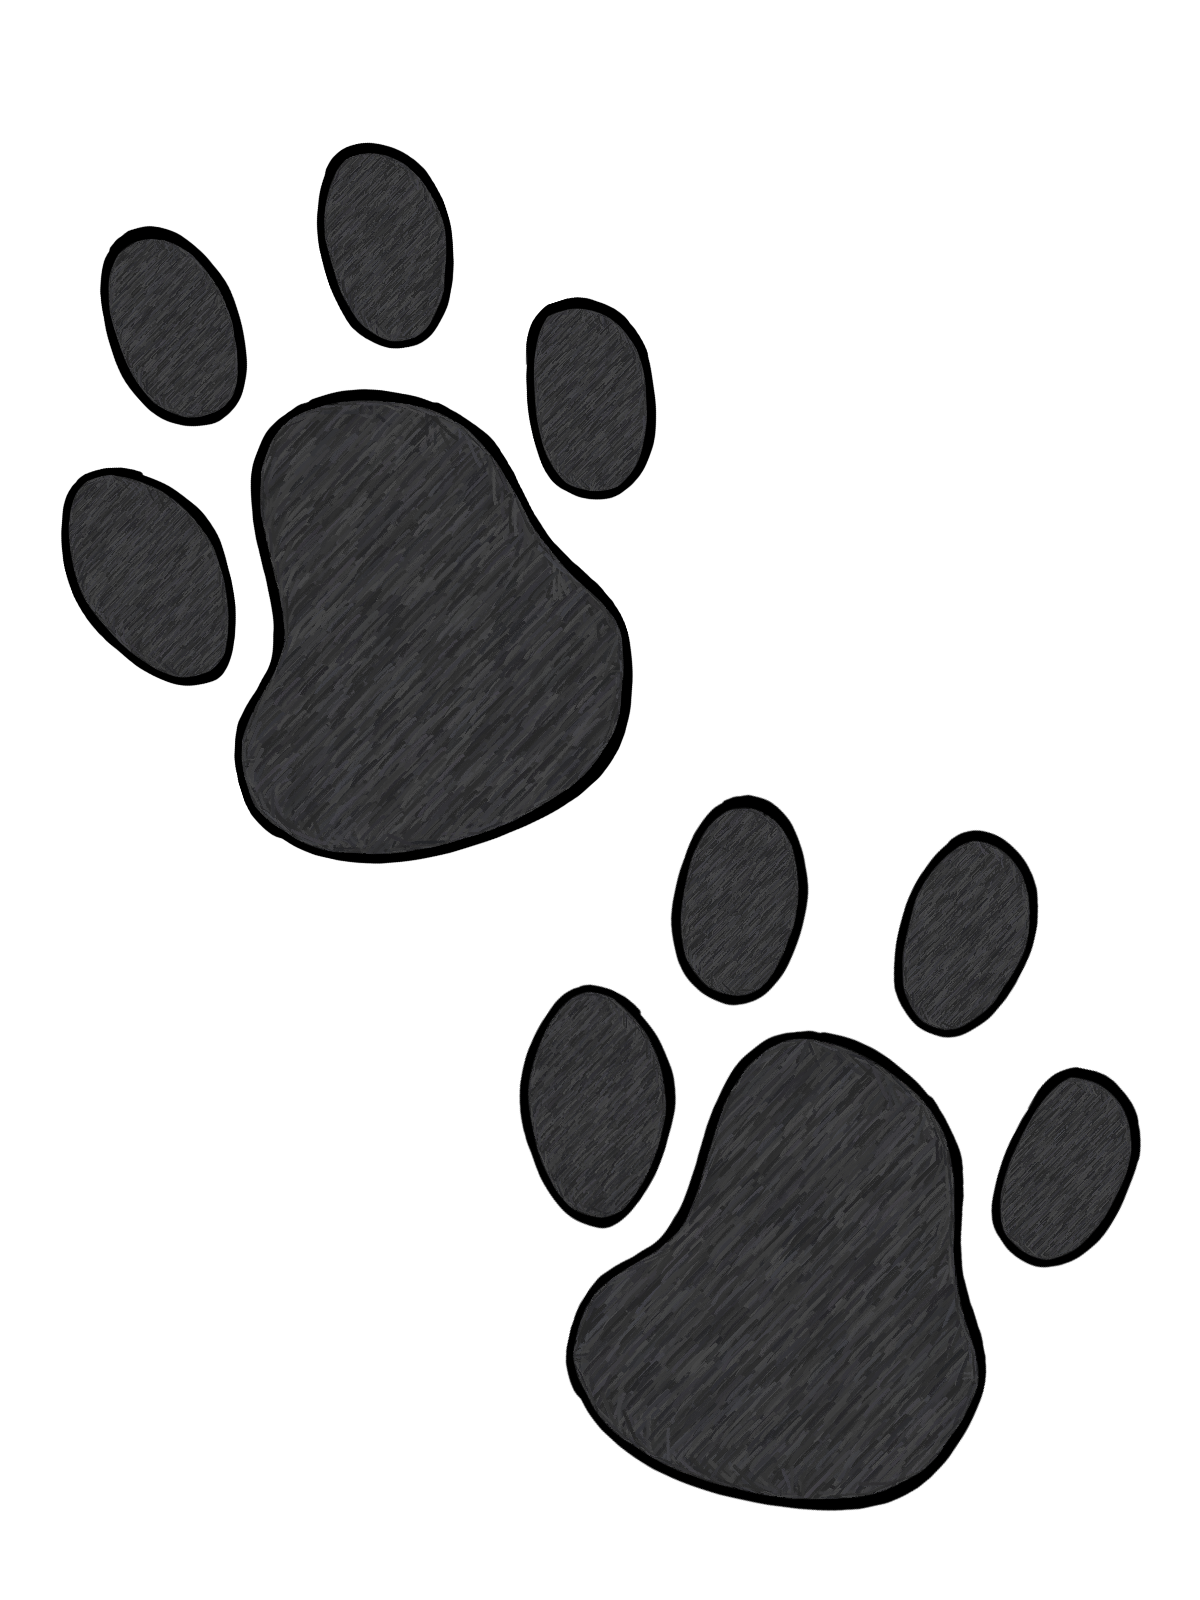 Ferret vector mlp dog. Free paw print pictures